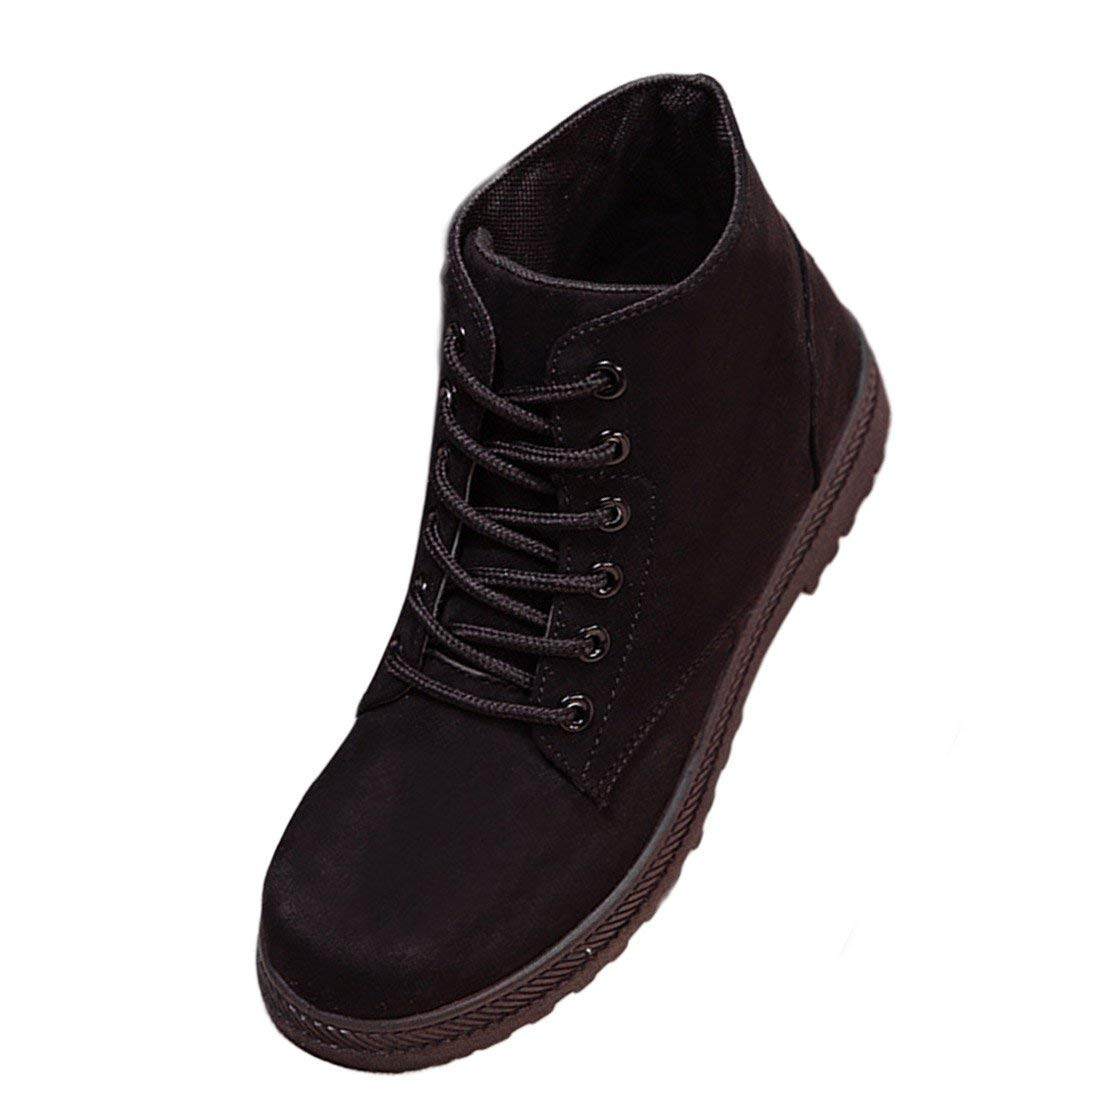 af714869f806 Get Quotations · O&N Women Girls Suede Winter Faux Fur Lace Up Shoes Flat  Cotton Snow Boot